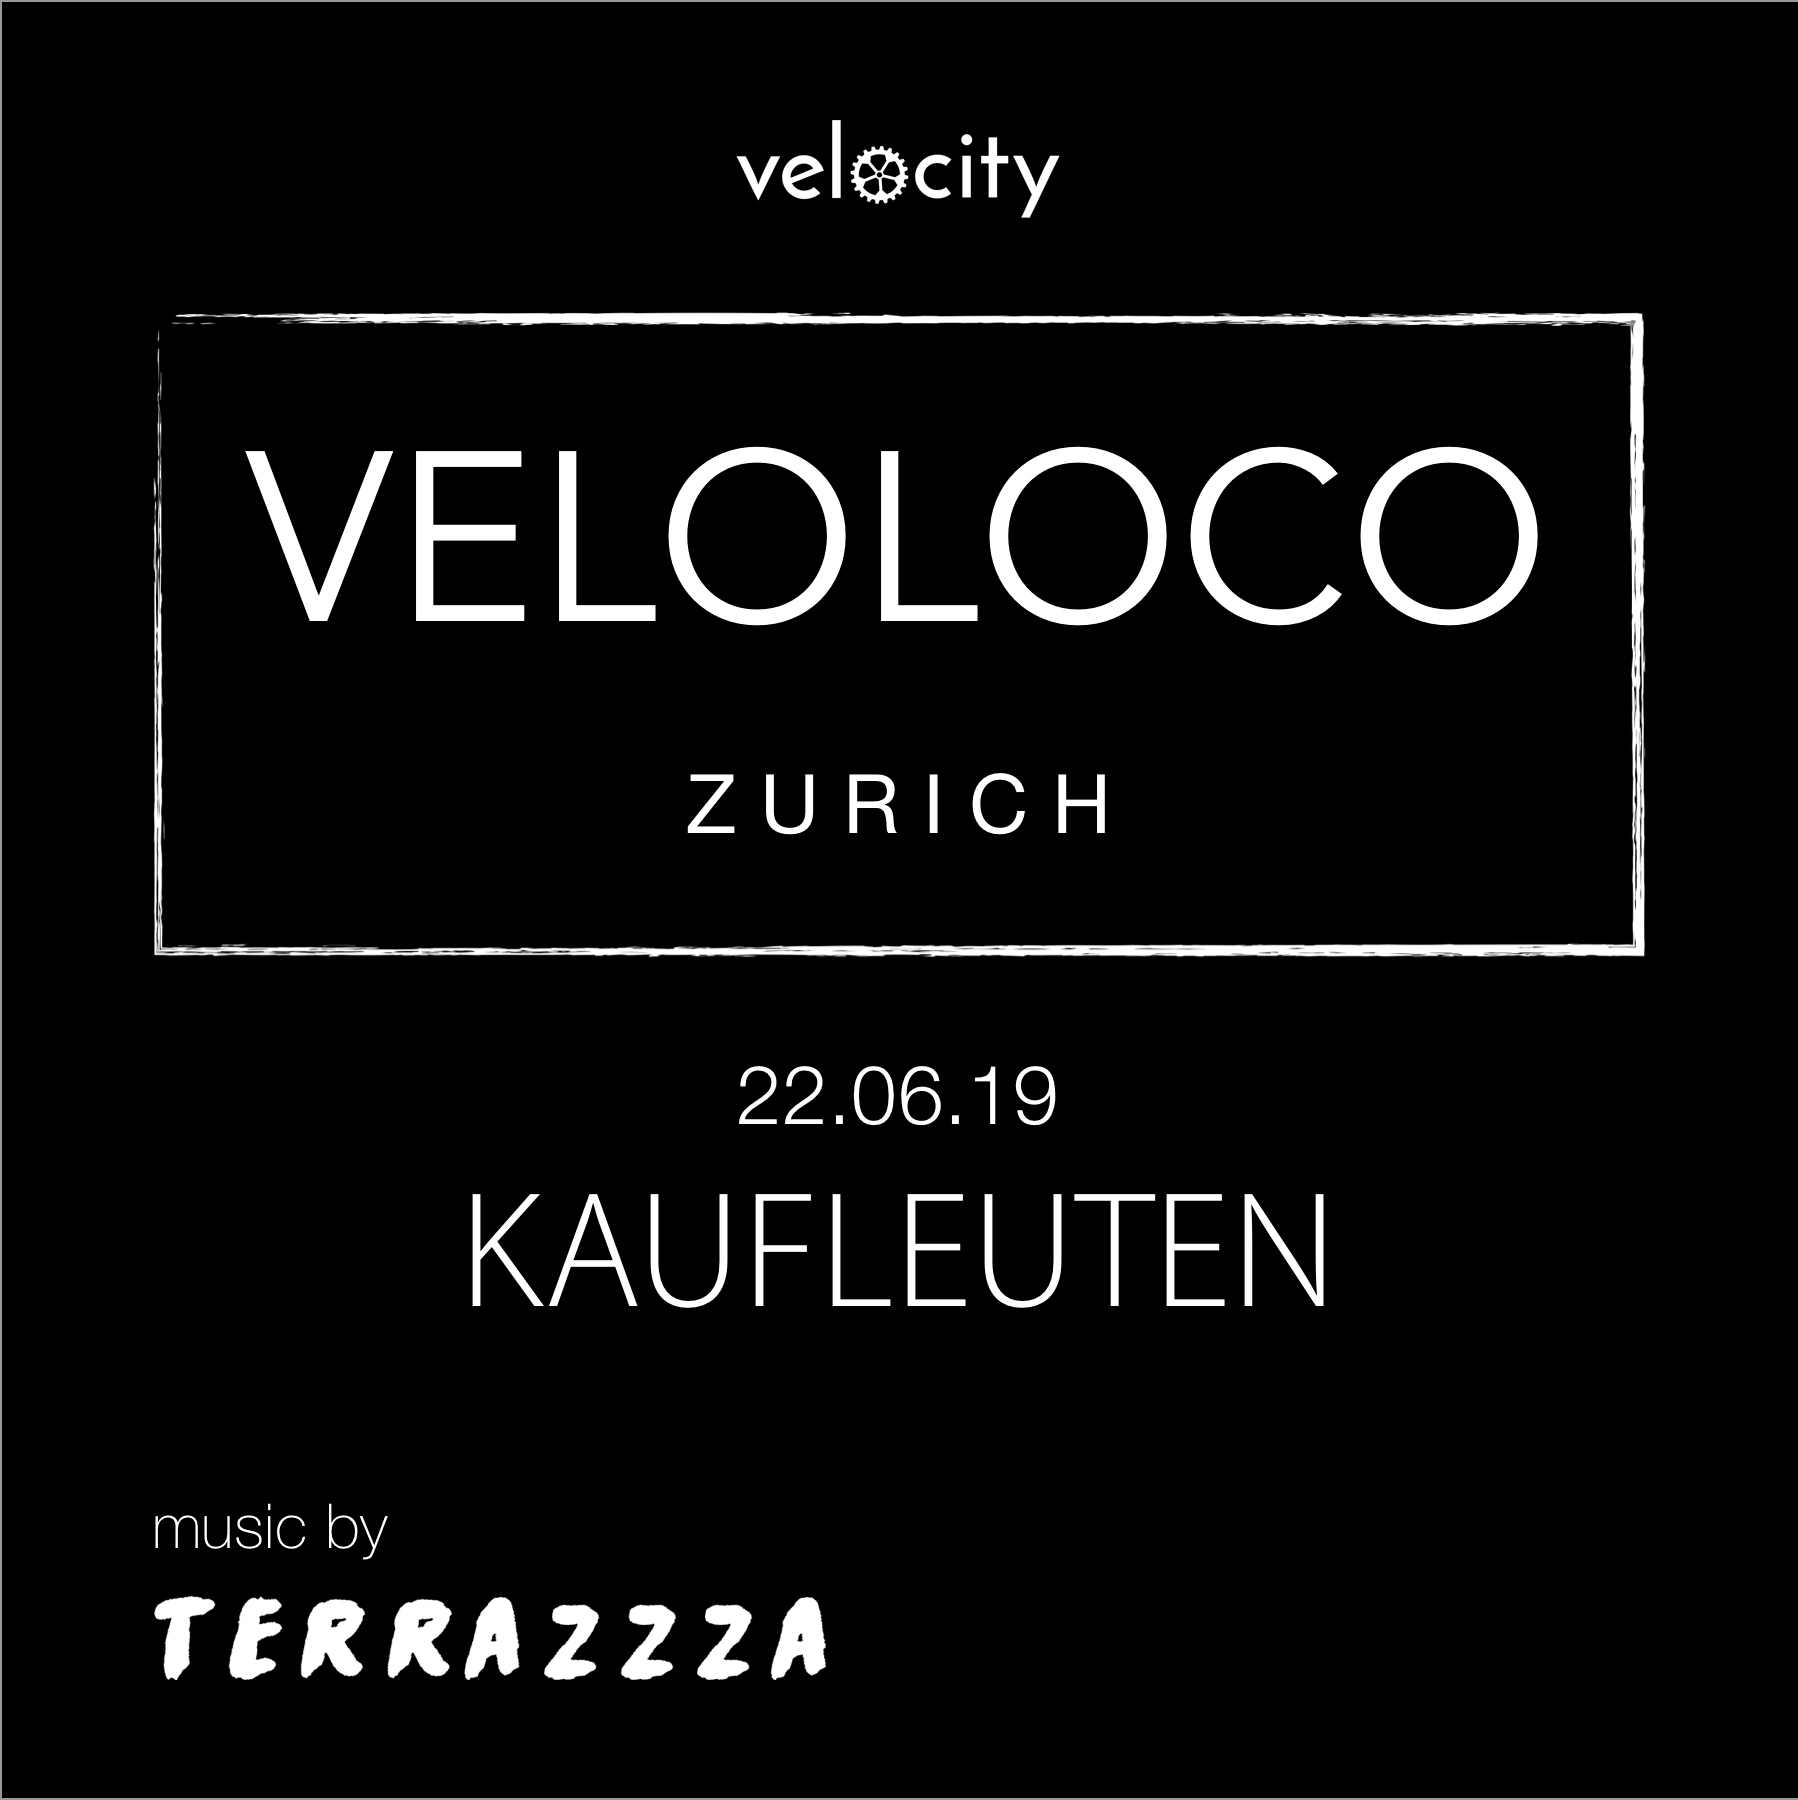 Veloloco Zurich S Hottest Party Of The Summer Velocity